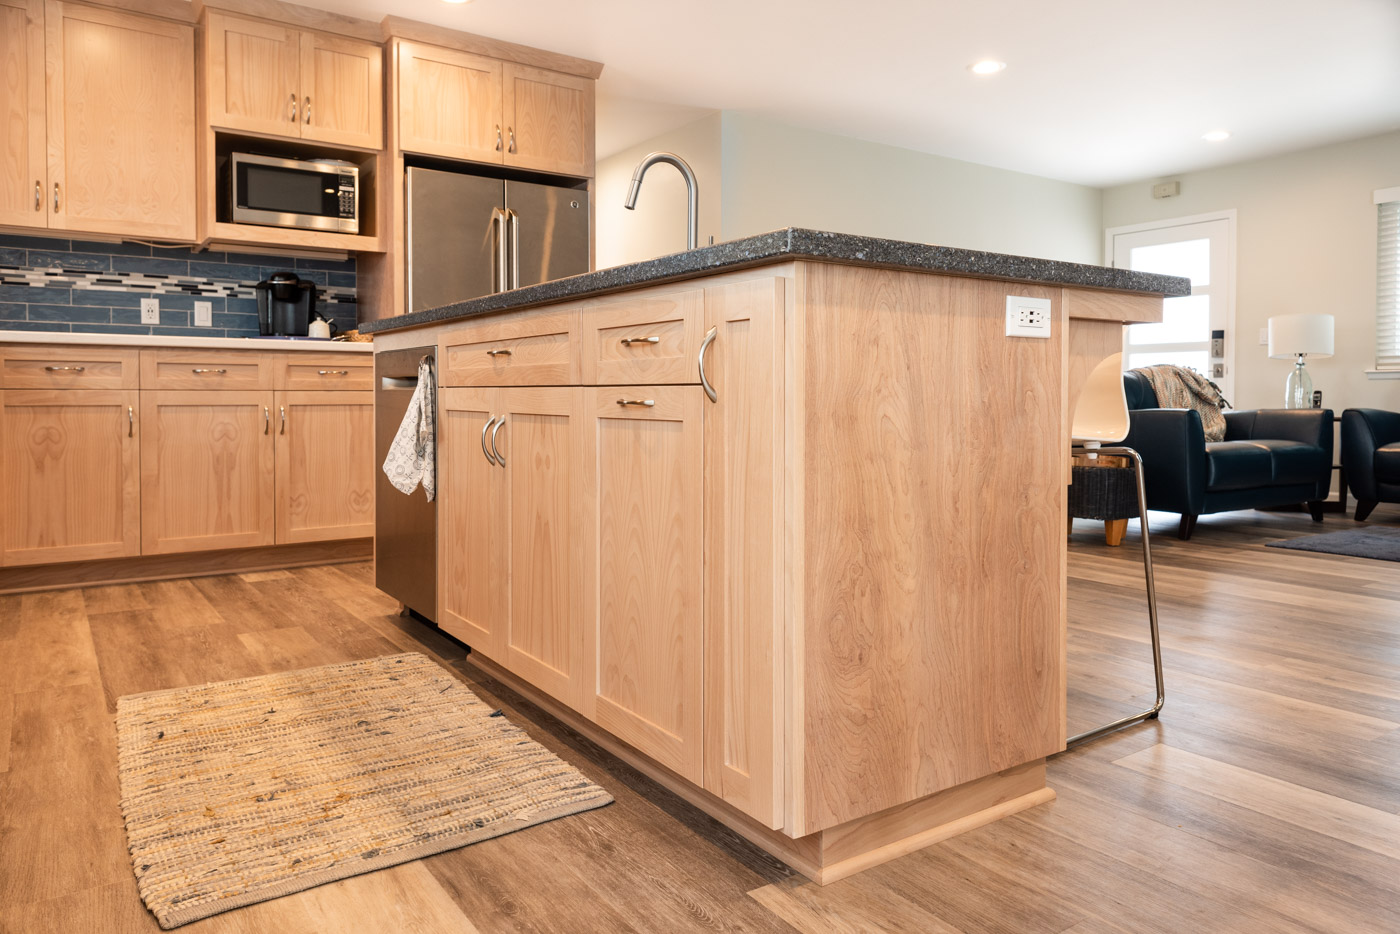 Coastal Contemporary custom kitchen cabinets with natural wood stain and custom island